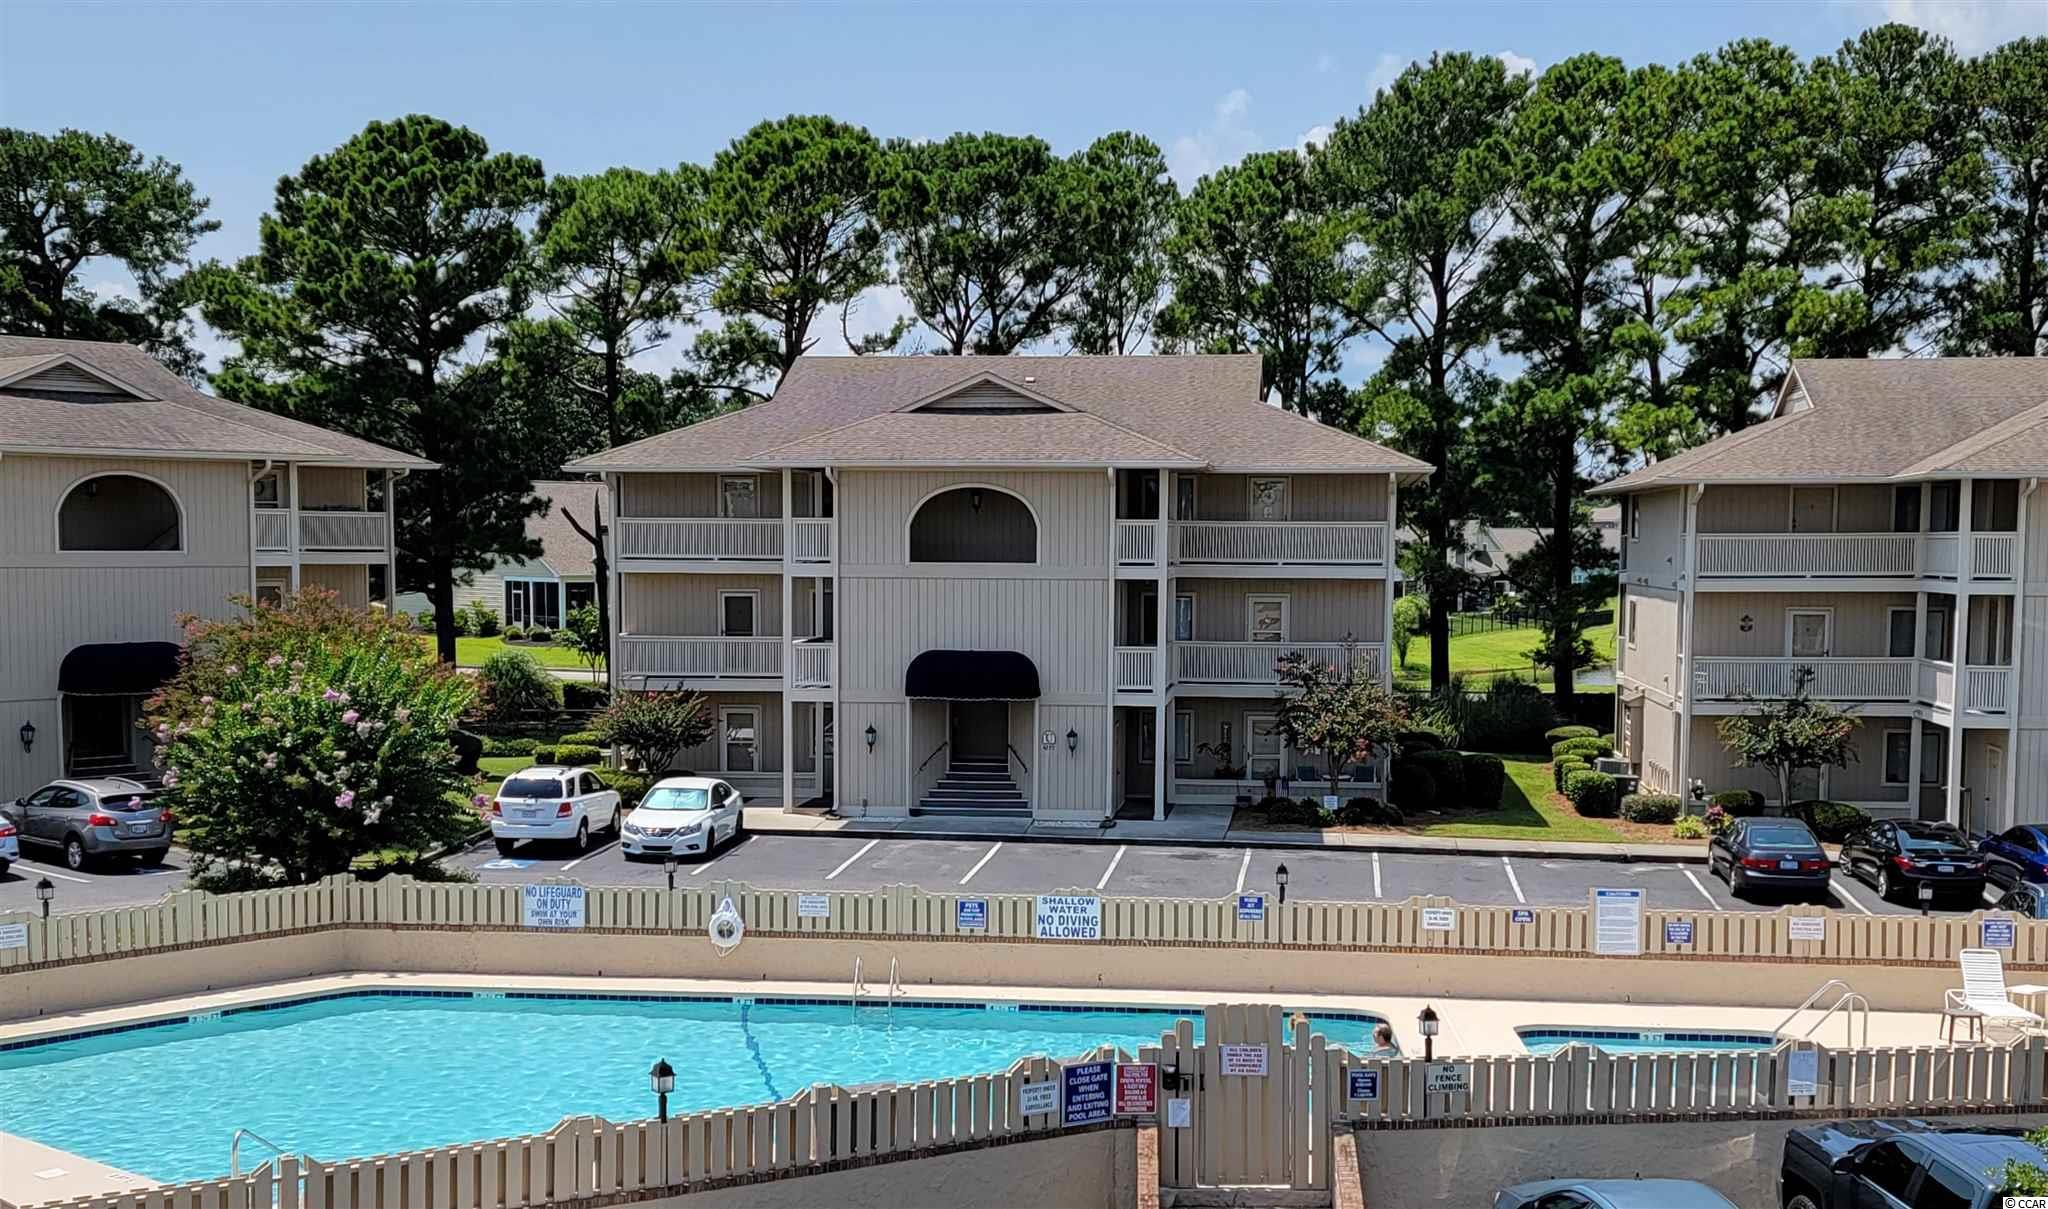 JUST LISTED..... Great price for the perfect beach/golf getaway located just a few miles from the beautiful beaches of Cherry Grove and North Myrtle Beach. Close to dining, shopping, golf, and boating. Little River offers great restaurants w/dining on the Intracoastal Waterway, home of the Blue Crab Festival.   Don't wait ....Popular Cypress Bay listings are all under contract at this time.